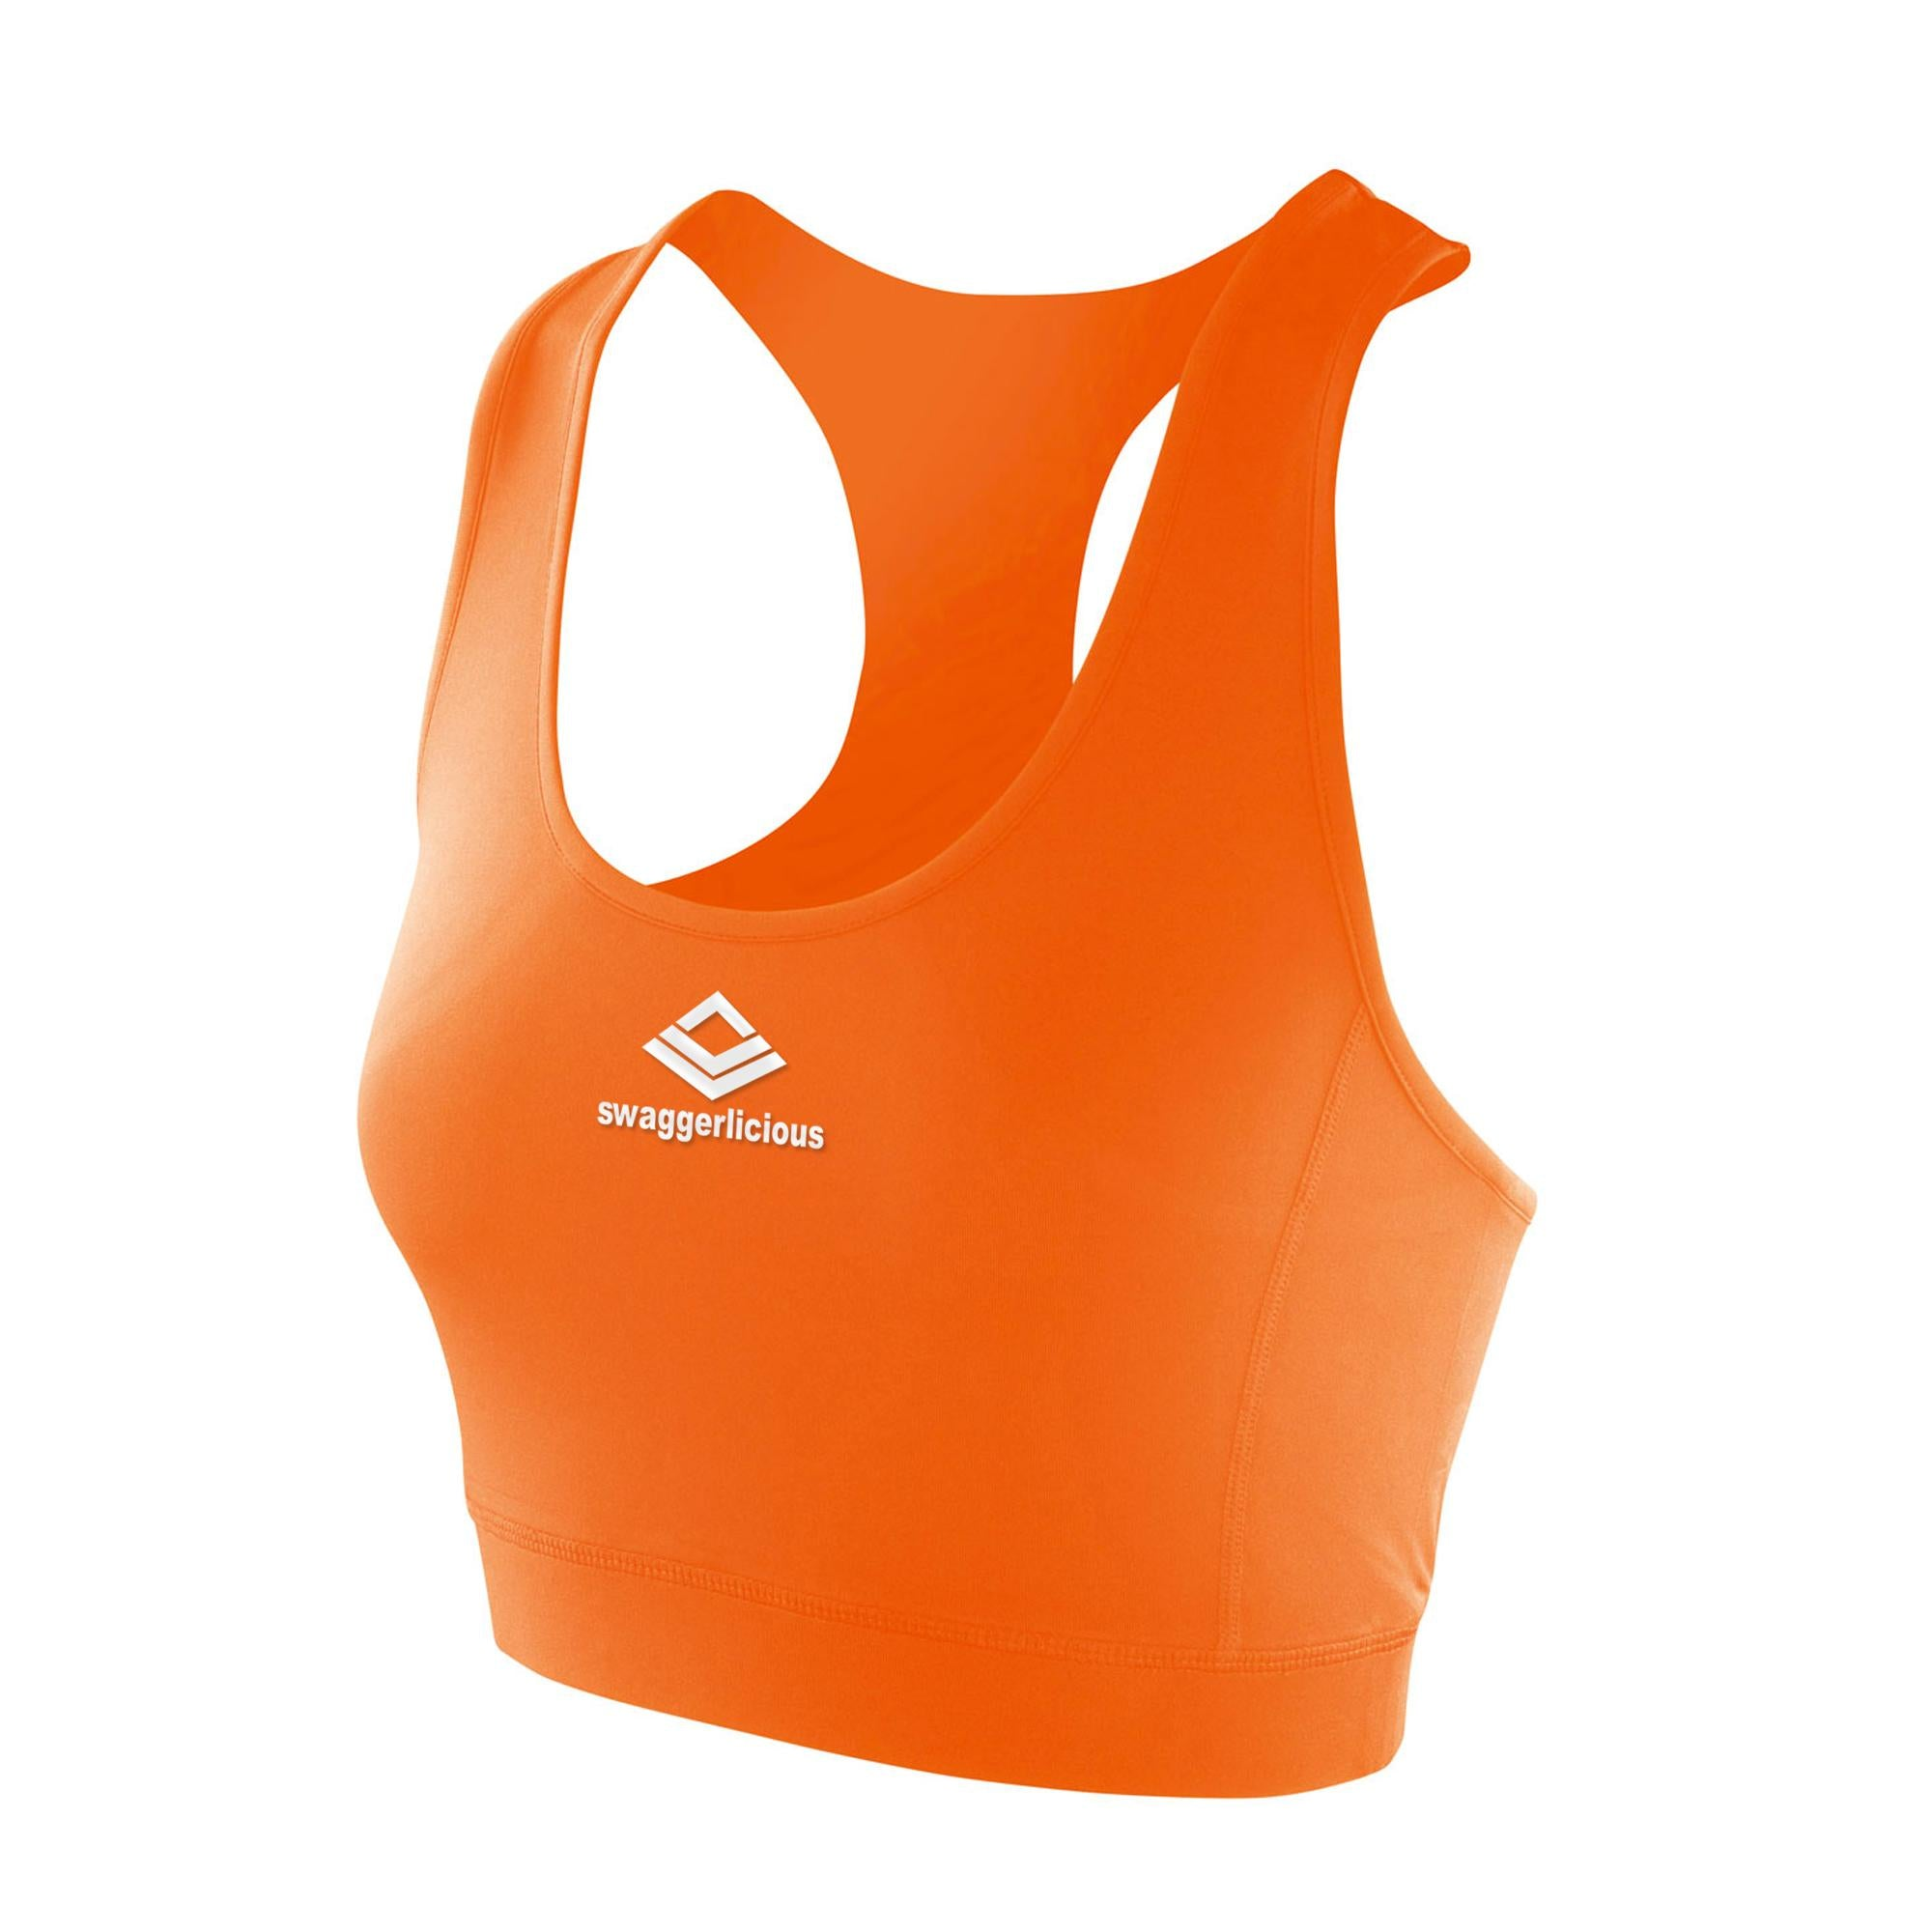 SWAGGERLICIOUS FIT TANGERINE CROP TOP - swaggerlicious-clothing.com